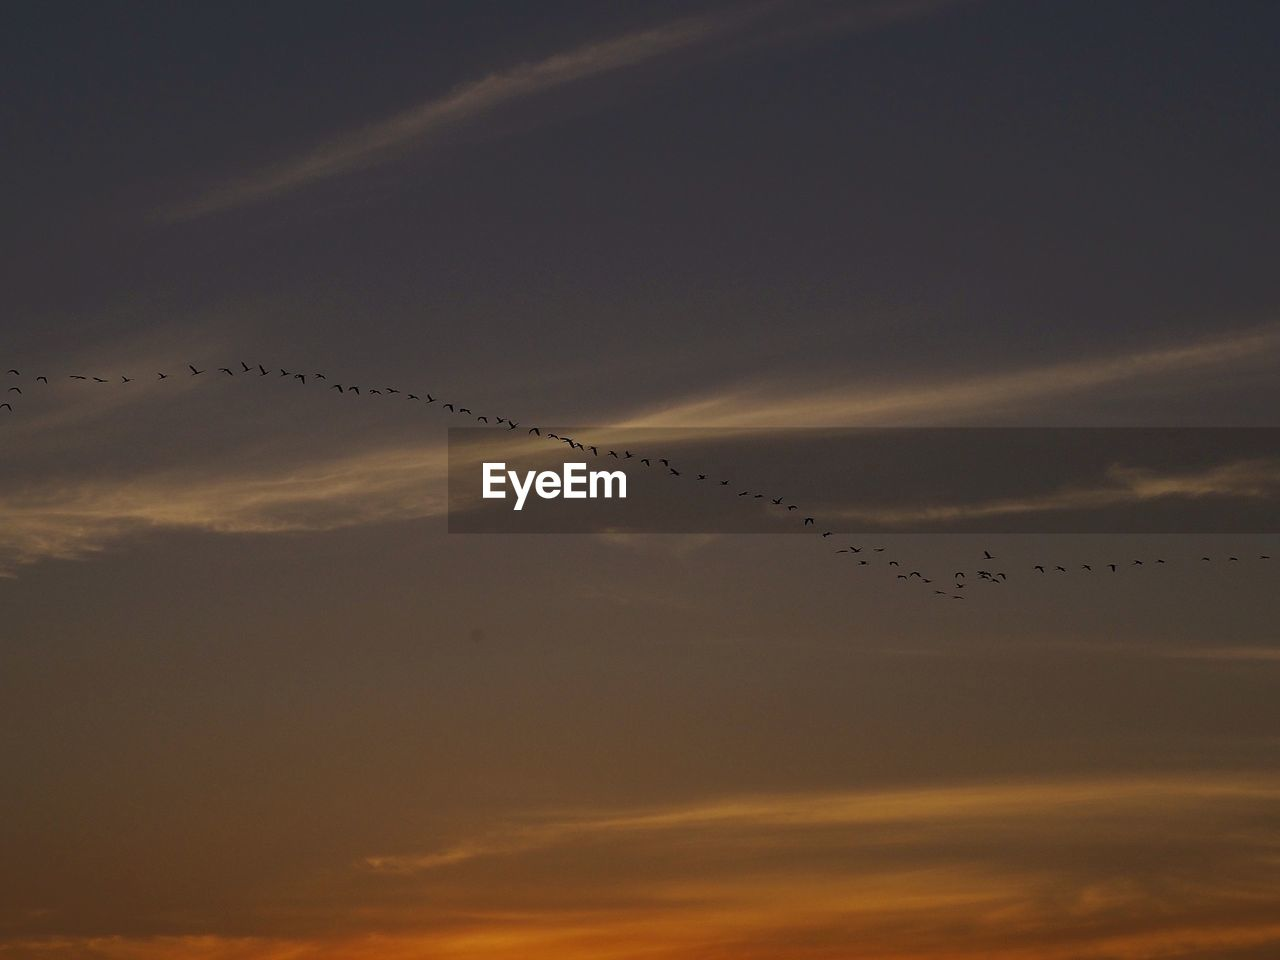 sunset, sky, cloud - sky, bird, flying, beauty in nature, animal themes, animal wildlife, group of animals, vertebrate, animal, animals in the wild, silhouette, large group of animals, flock of birds, tranquil scene, tranquility, orange color, scenics - nature, low angle view, no people